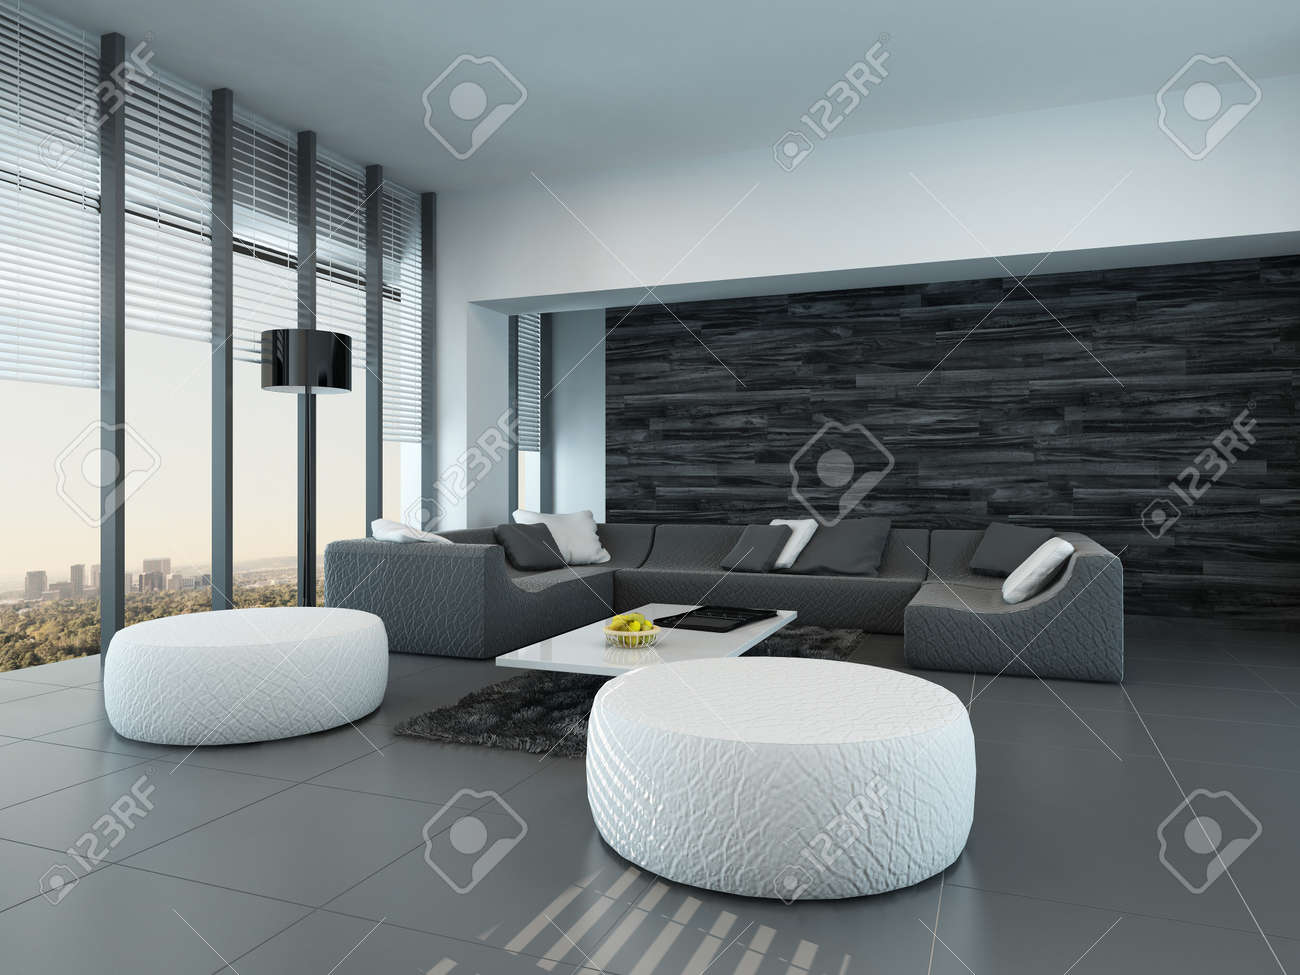 Stock Photo Tilted Perspective Of A Modern Grey And White Living Room Interior With Ottomans And A Large Settee In Front Of Floor To Ceiling Glass Windows